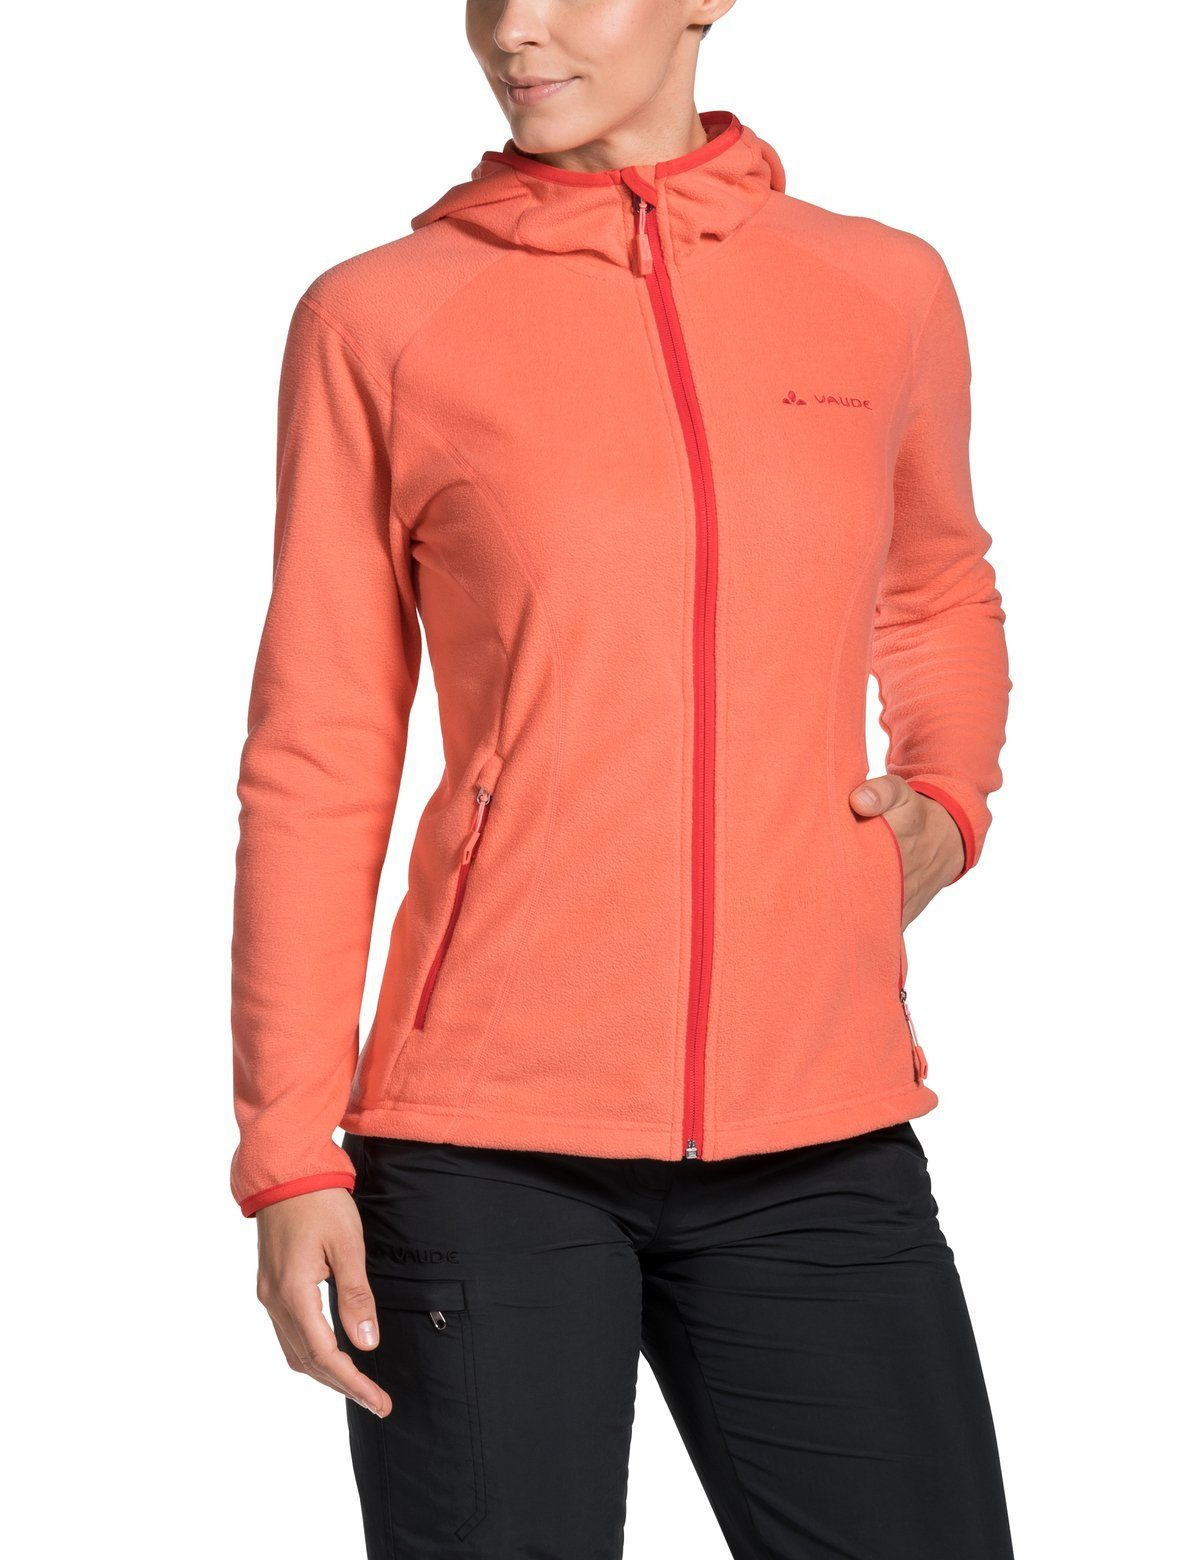 Vaude - Women's Sunbury Hoody Jacket - Apricot- made from high-quality fleece - Weekendbee - sustainable sportswear